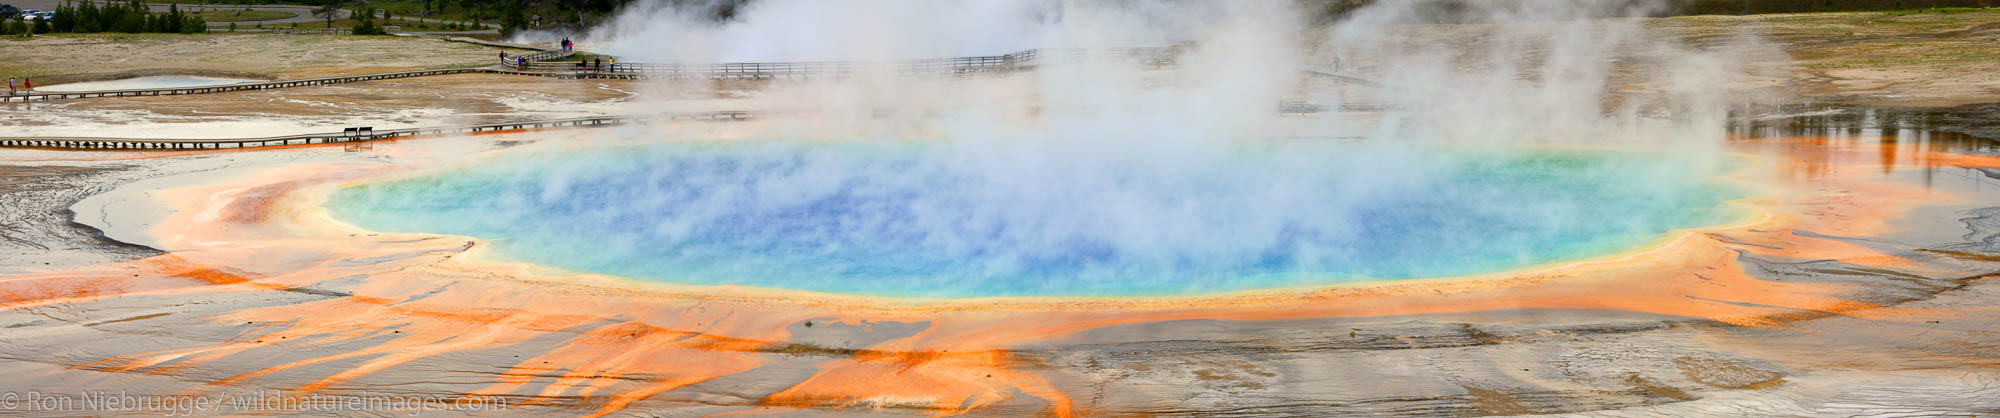 Grand Prismatic Spring, Midway Geyser Basin, Yellowstone National Park, Wyoming.